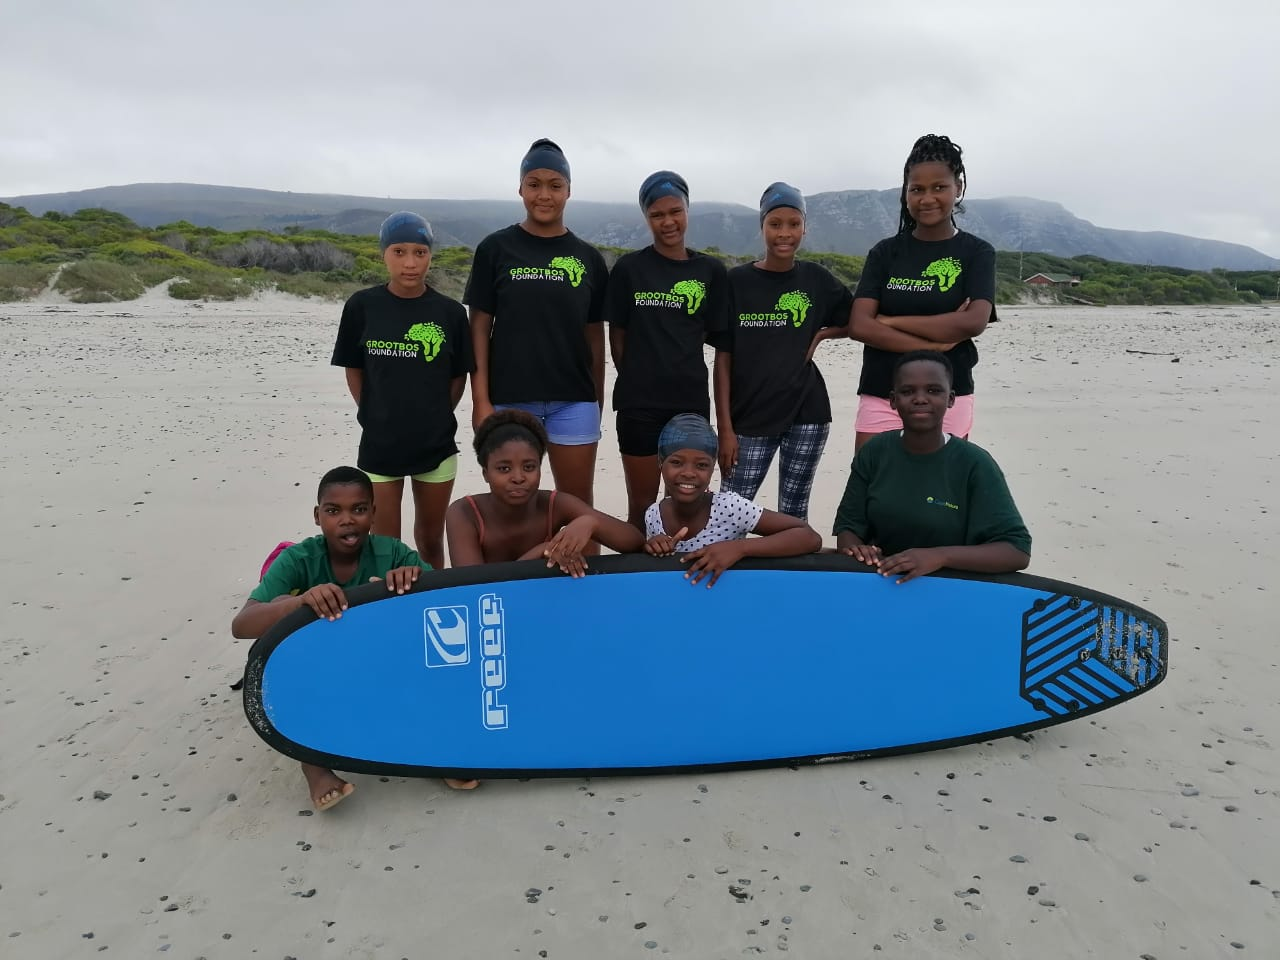 Group of girls in grootos foundation tshirts standing by a surfboard on the beach